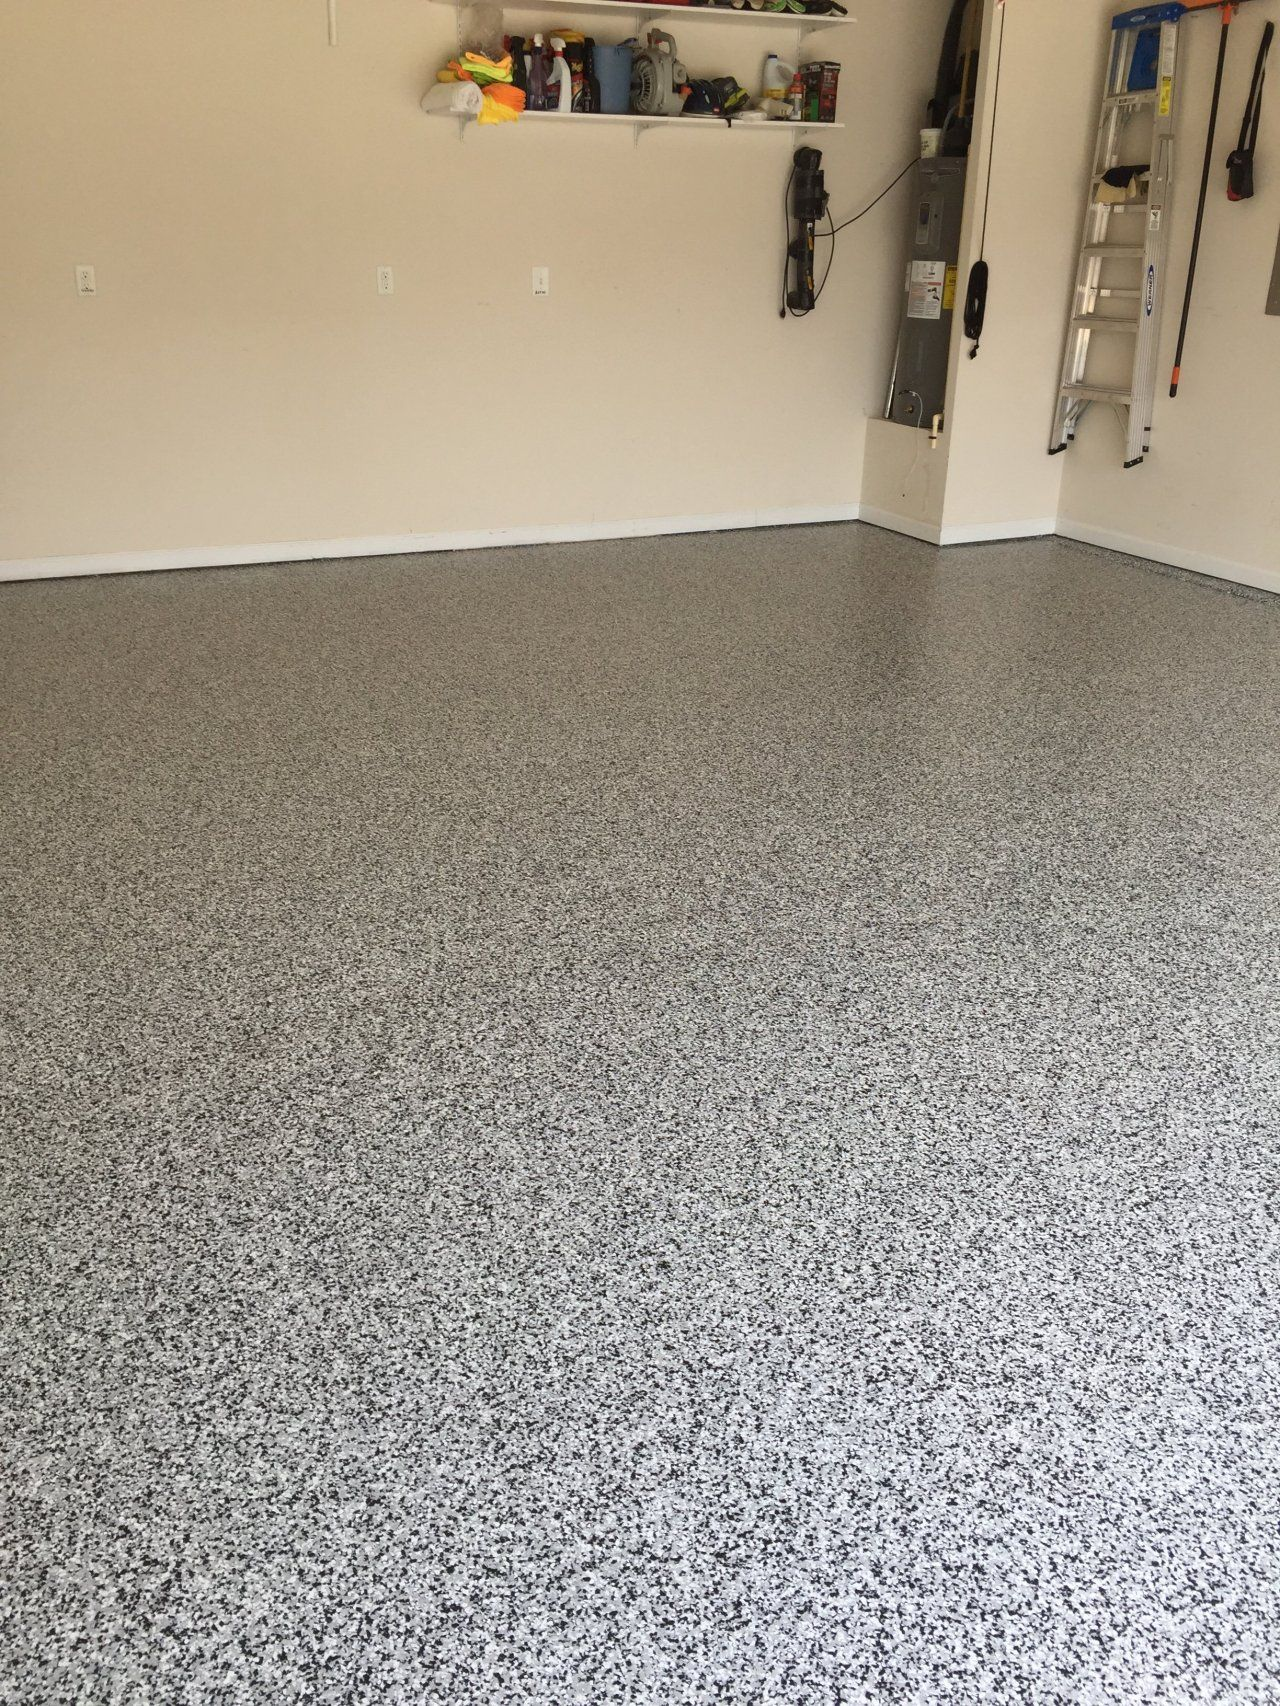 Garage Epoxy With Flakes Decorative Epoxy Flake Garage Floor In Cary North Carolina